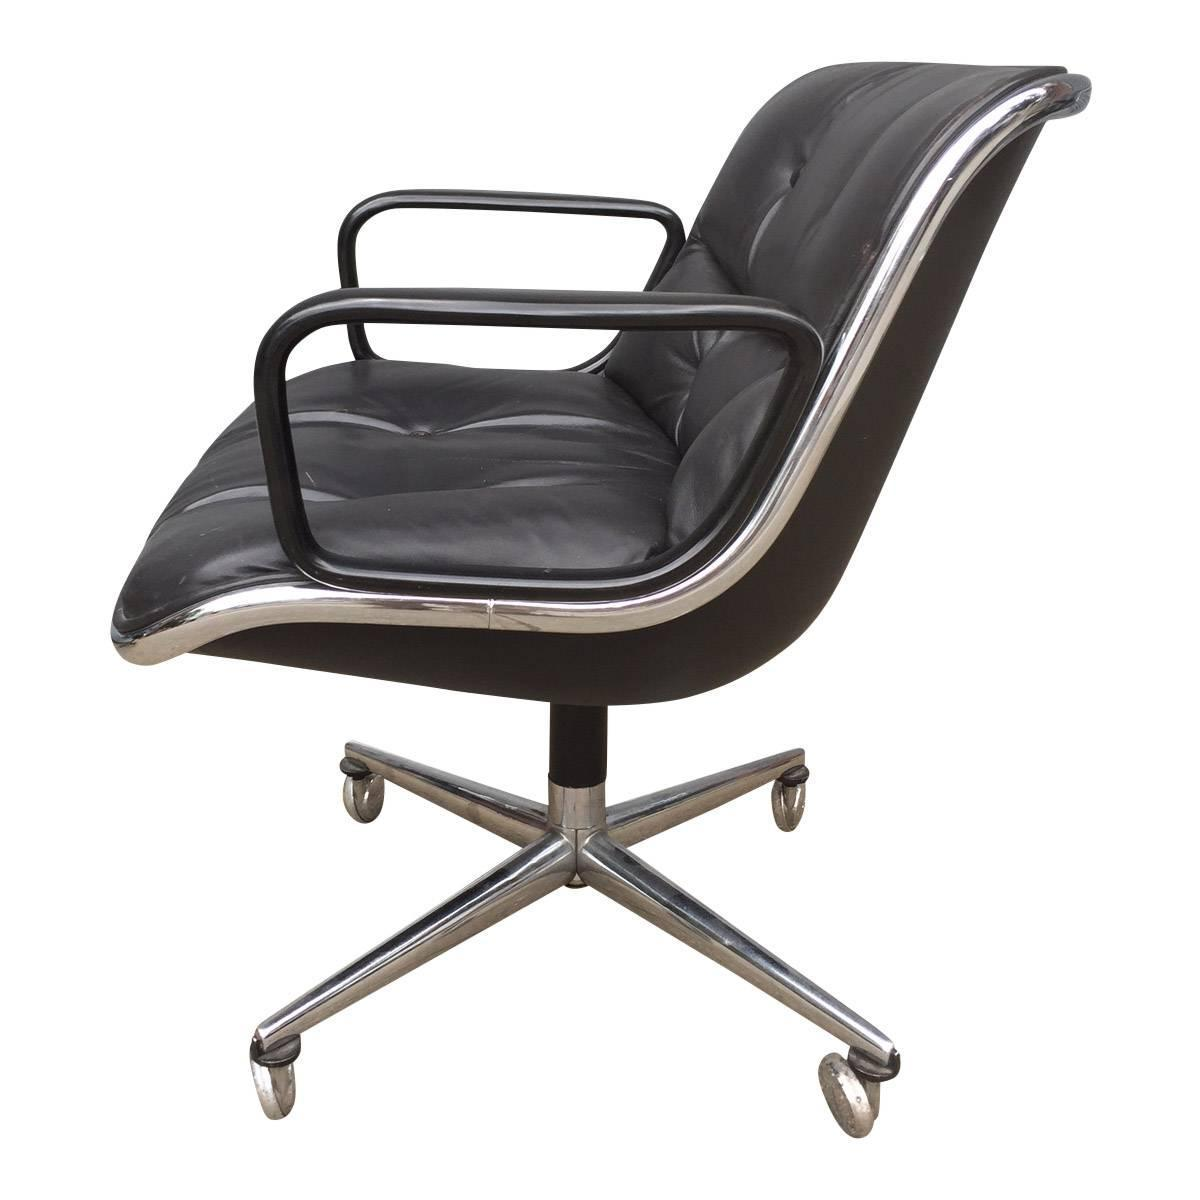 early charles pollock for knoll office chair at 1stdibs